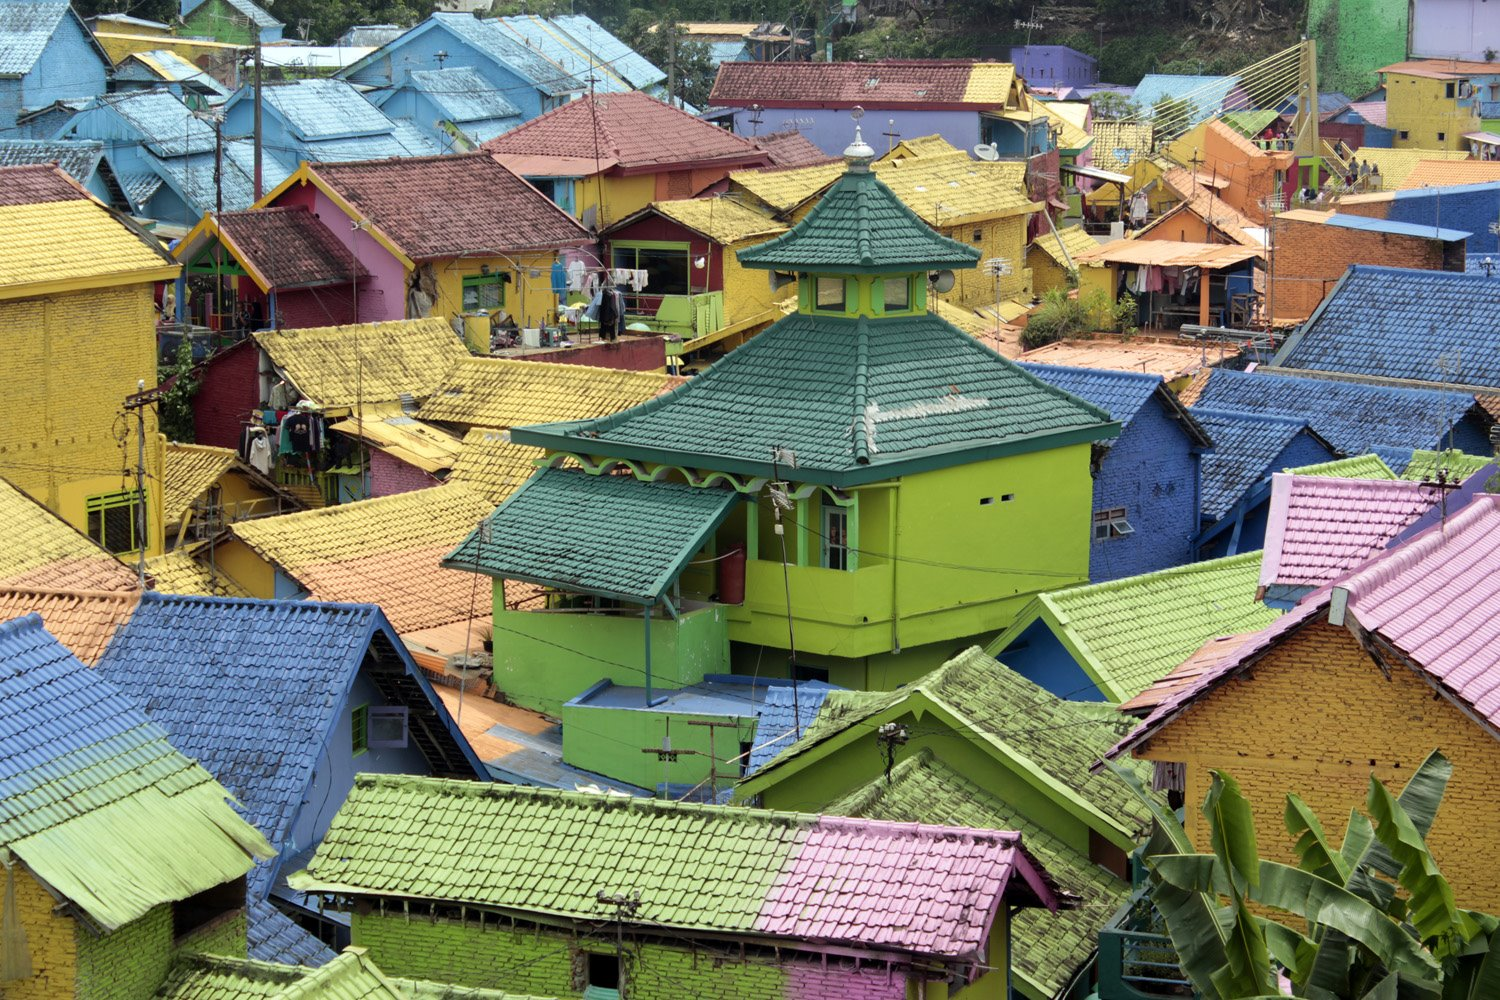 Malang, Indonesia - A colourful city